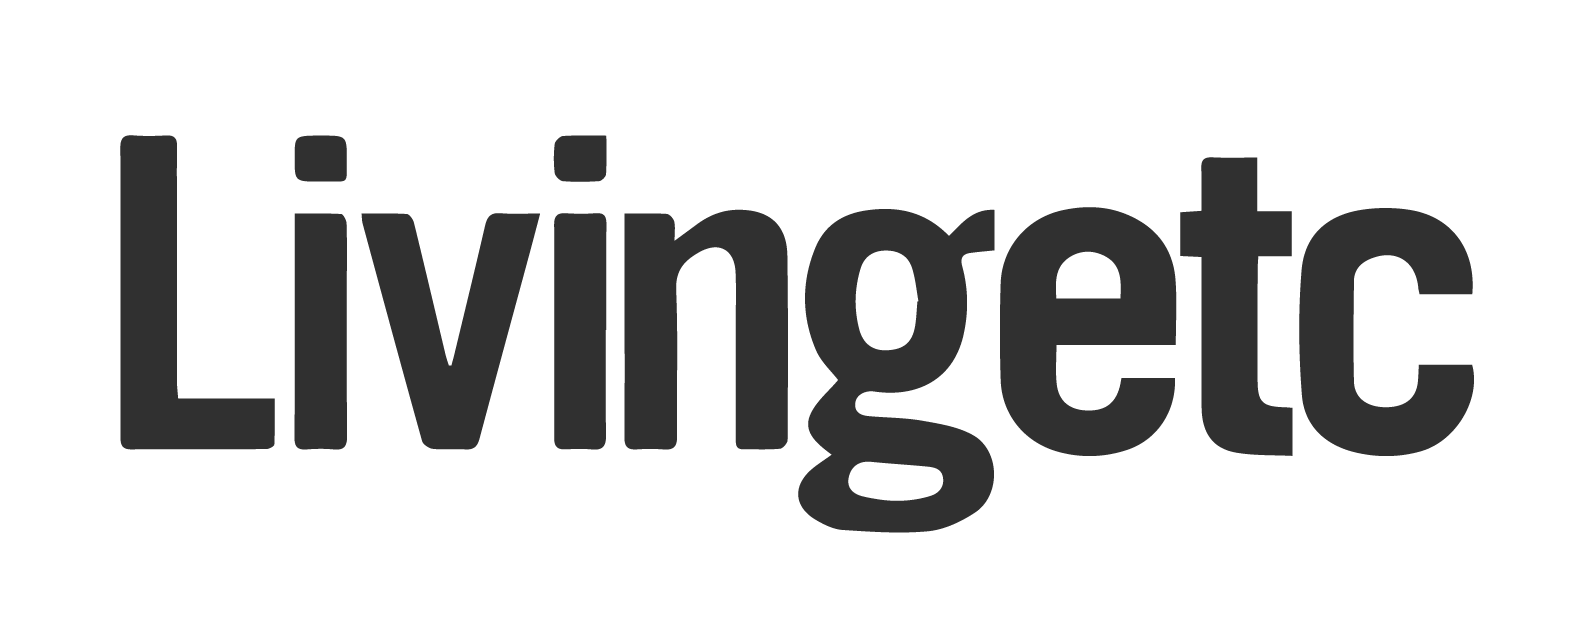 living-etc---thinner---black-logo